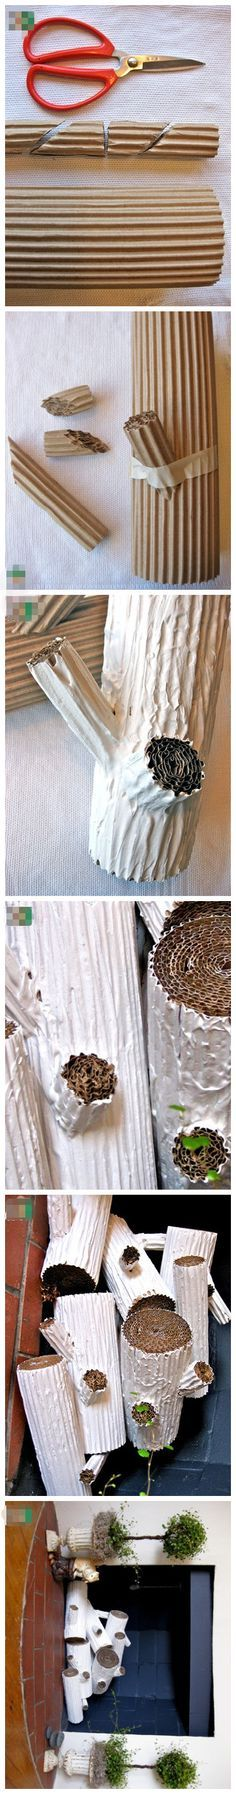 Cardboard and paint used to create faux birch decor. Could also think about a cactus Idea for a necklace hangar?